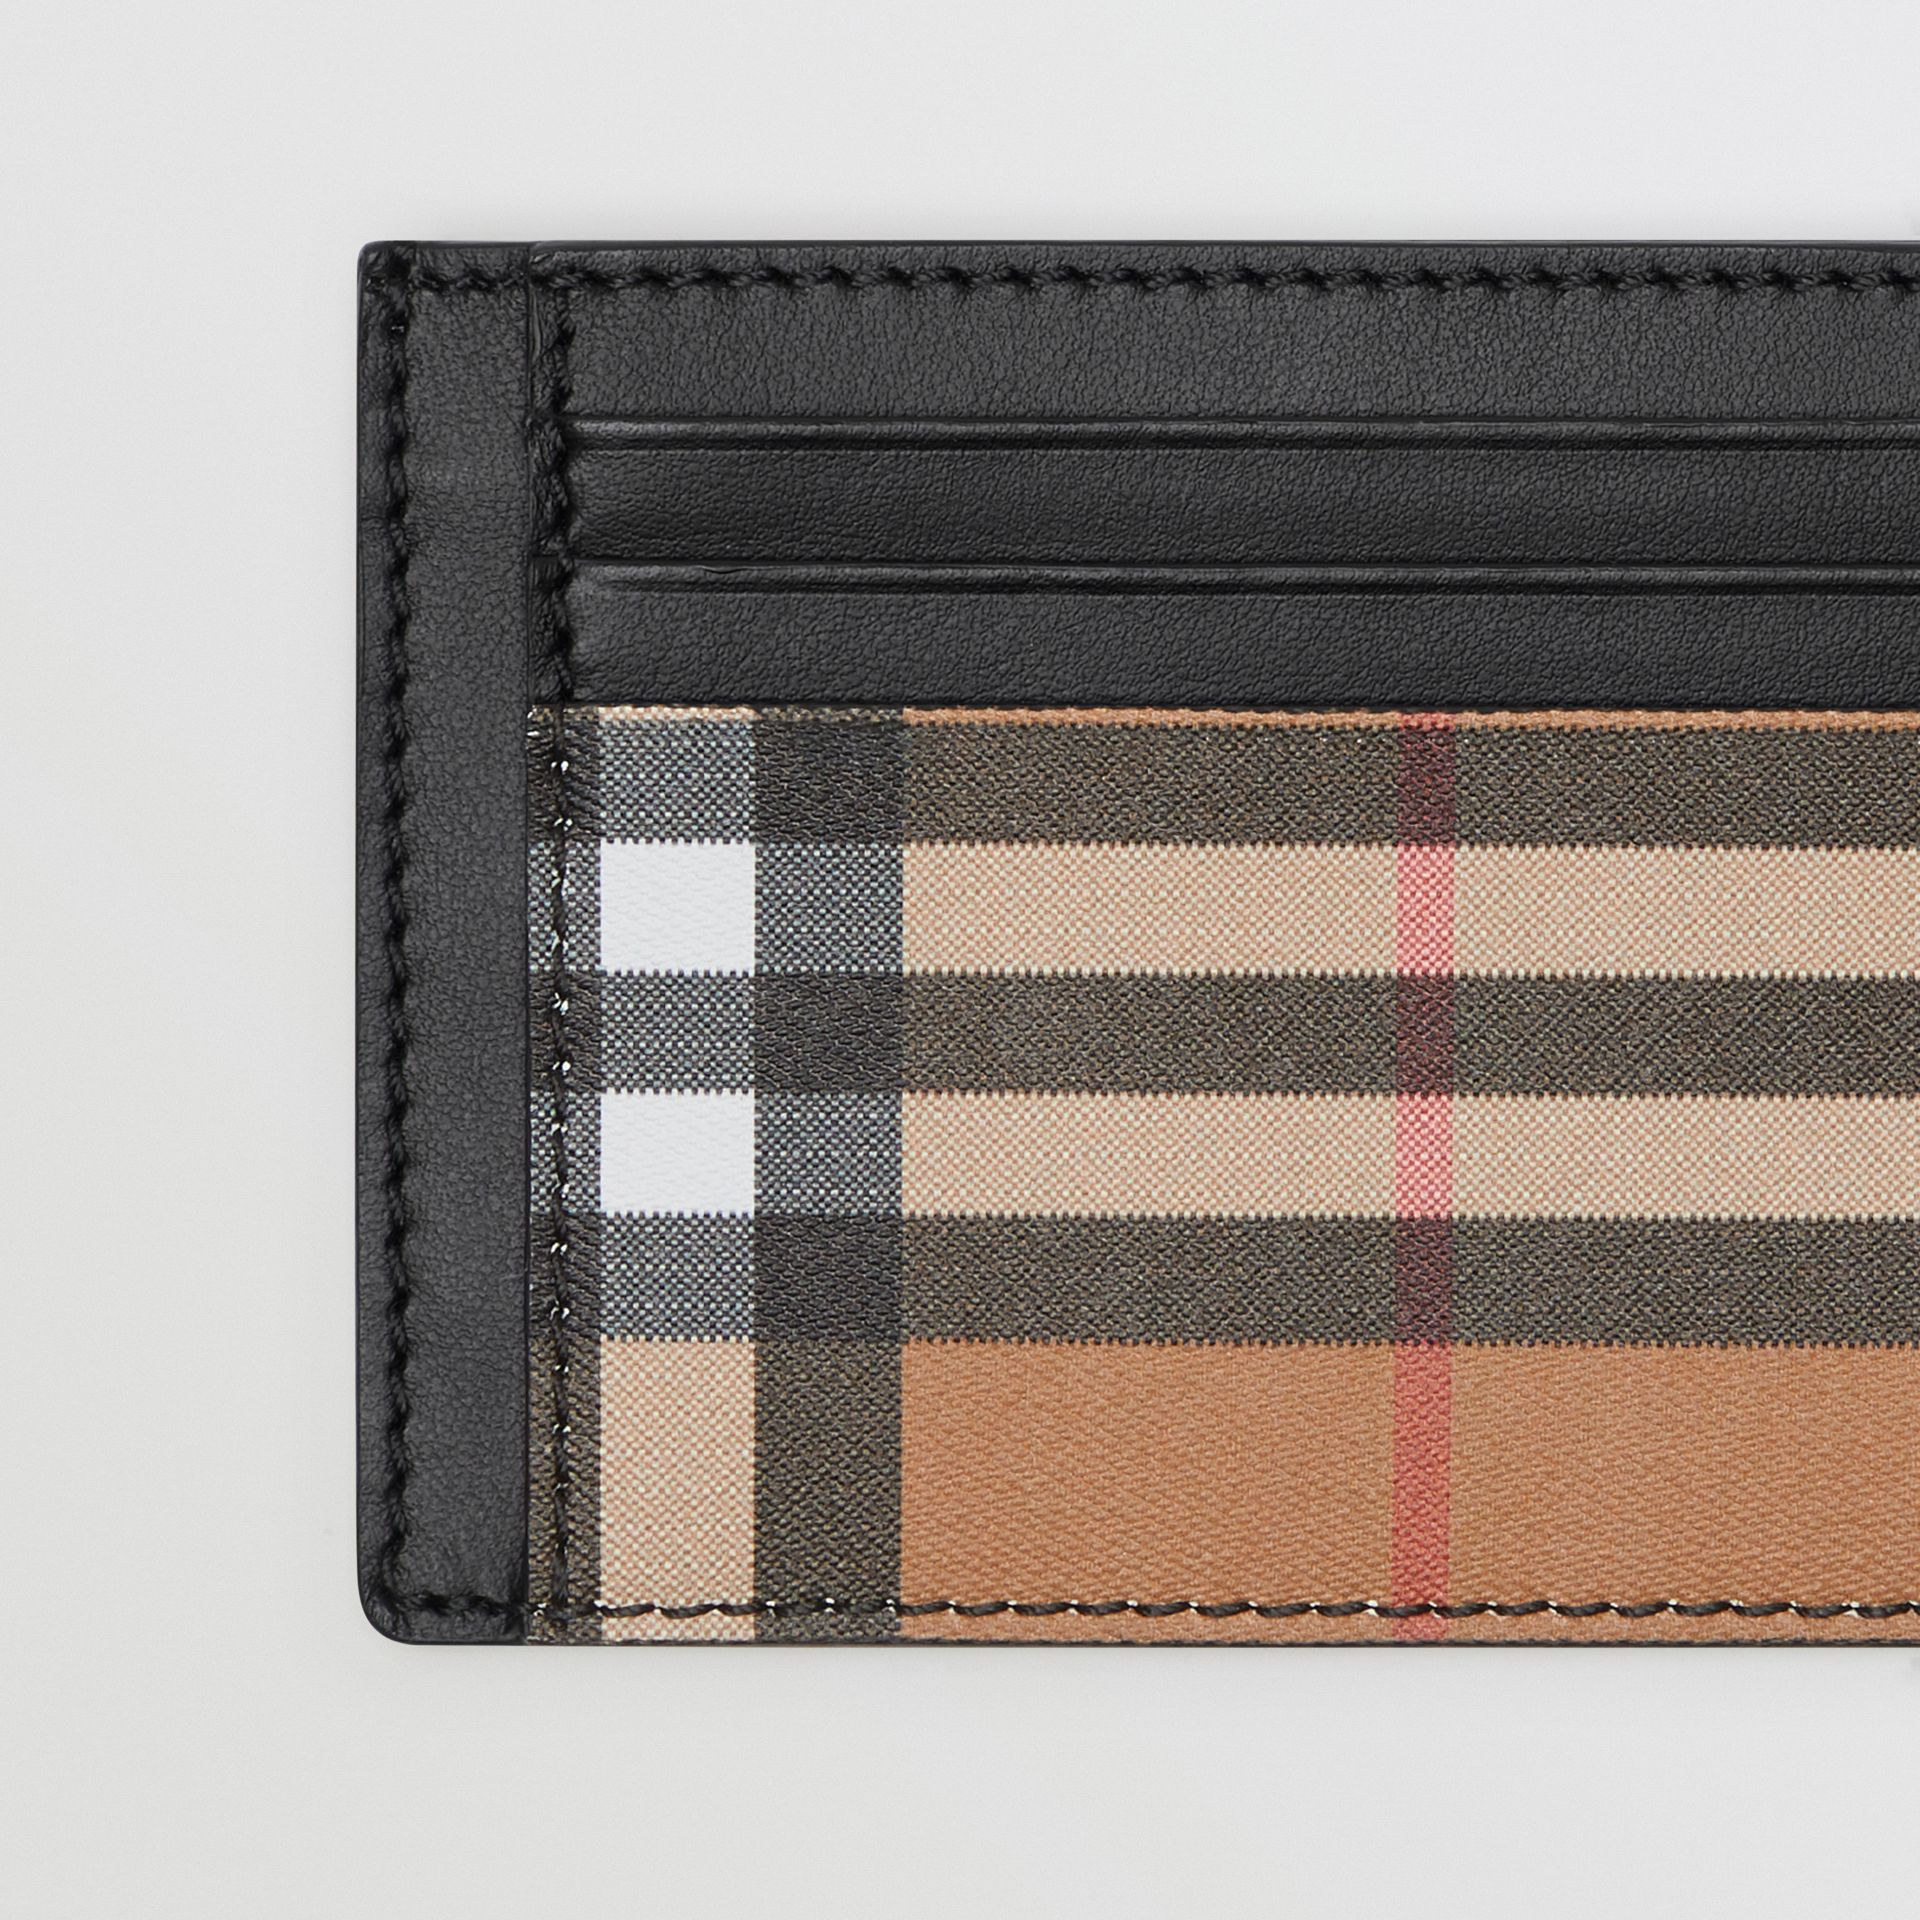 Vintage Check Leather Card Case in Black - Men | Burberry - gallery image 1